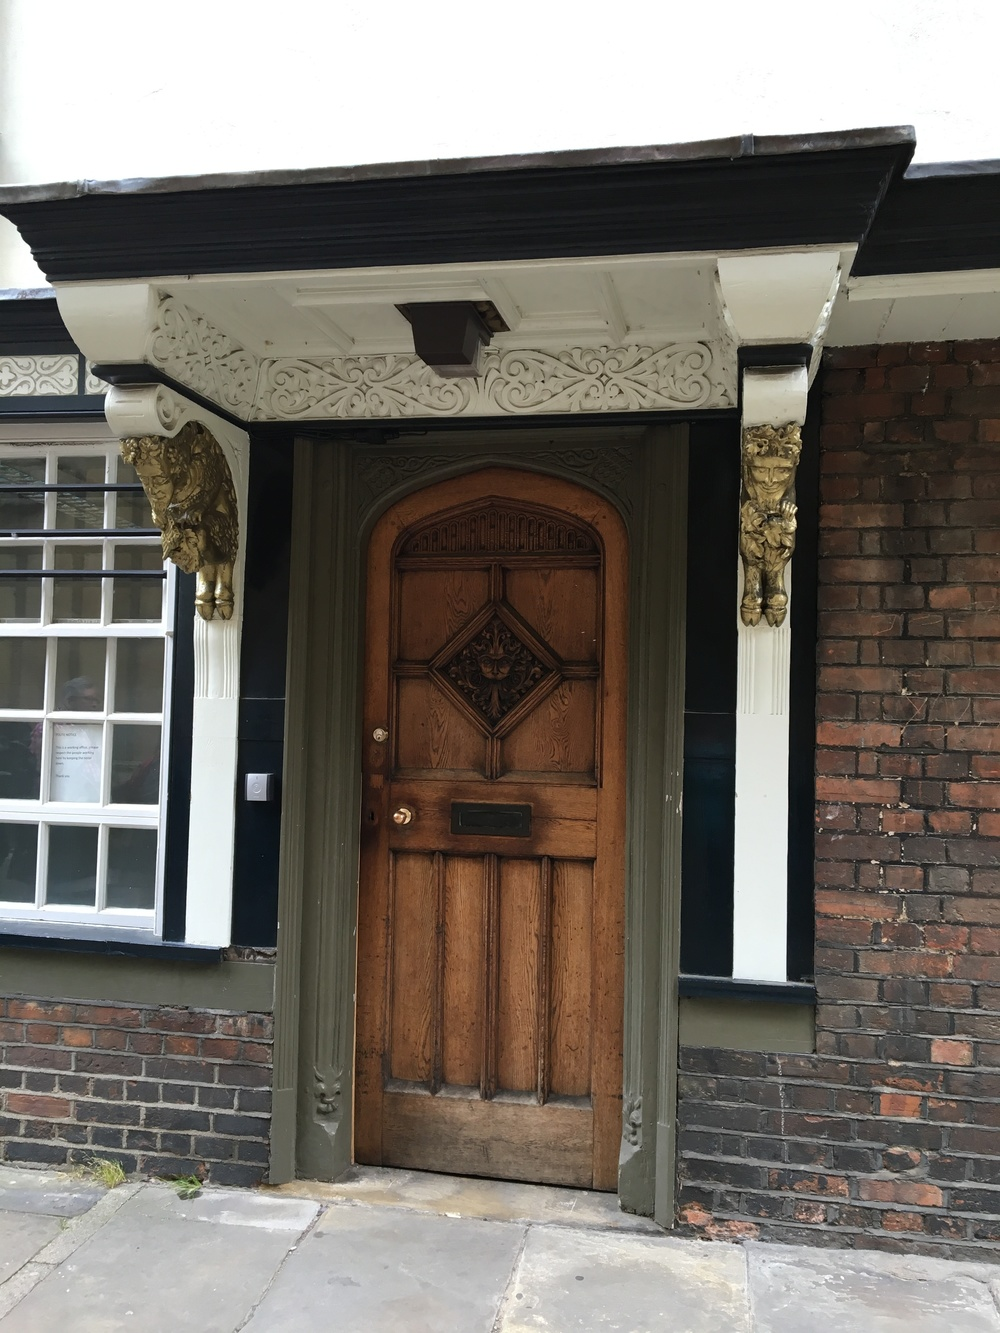 Across from St Mary's is this doorway, known as the Narnia door, with carvings thought to have inspired C.S. Lewis's  The Lion, the Witch and the Wardrobe.